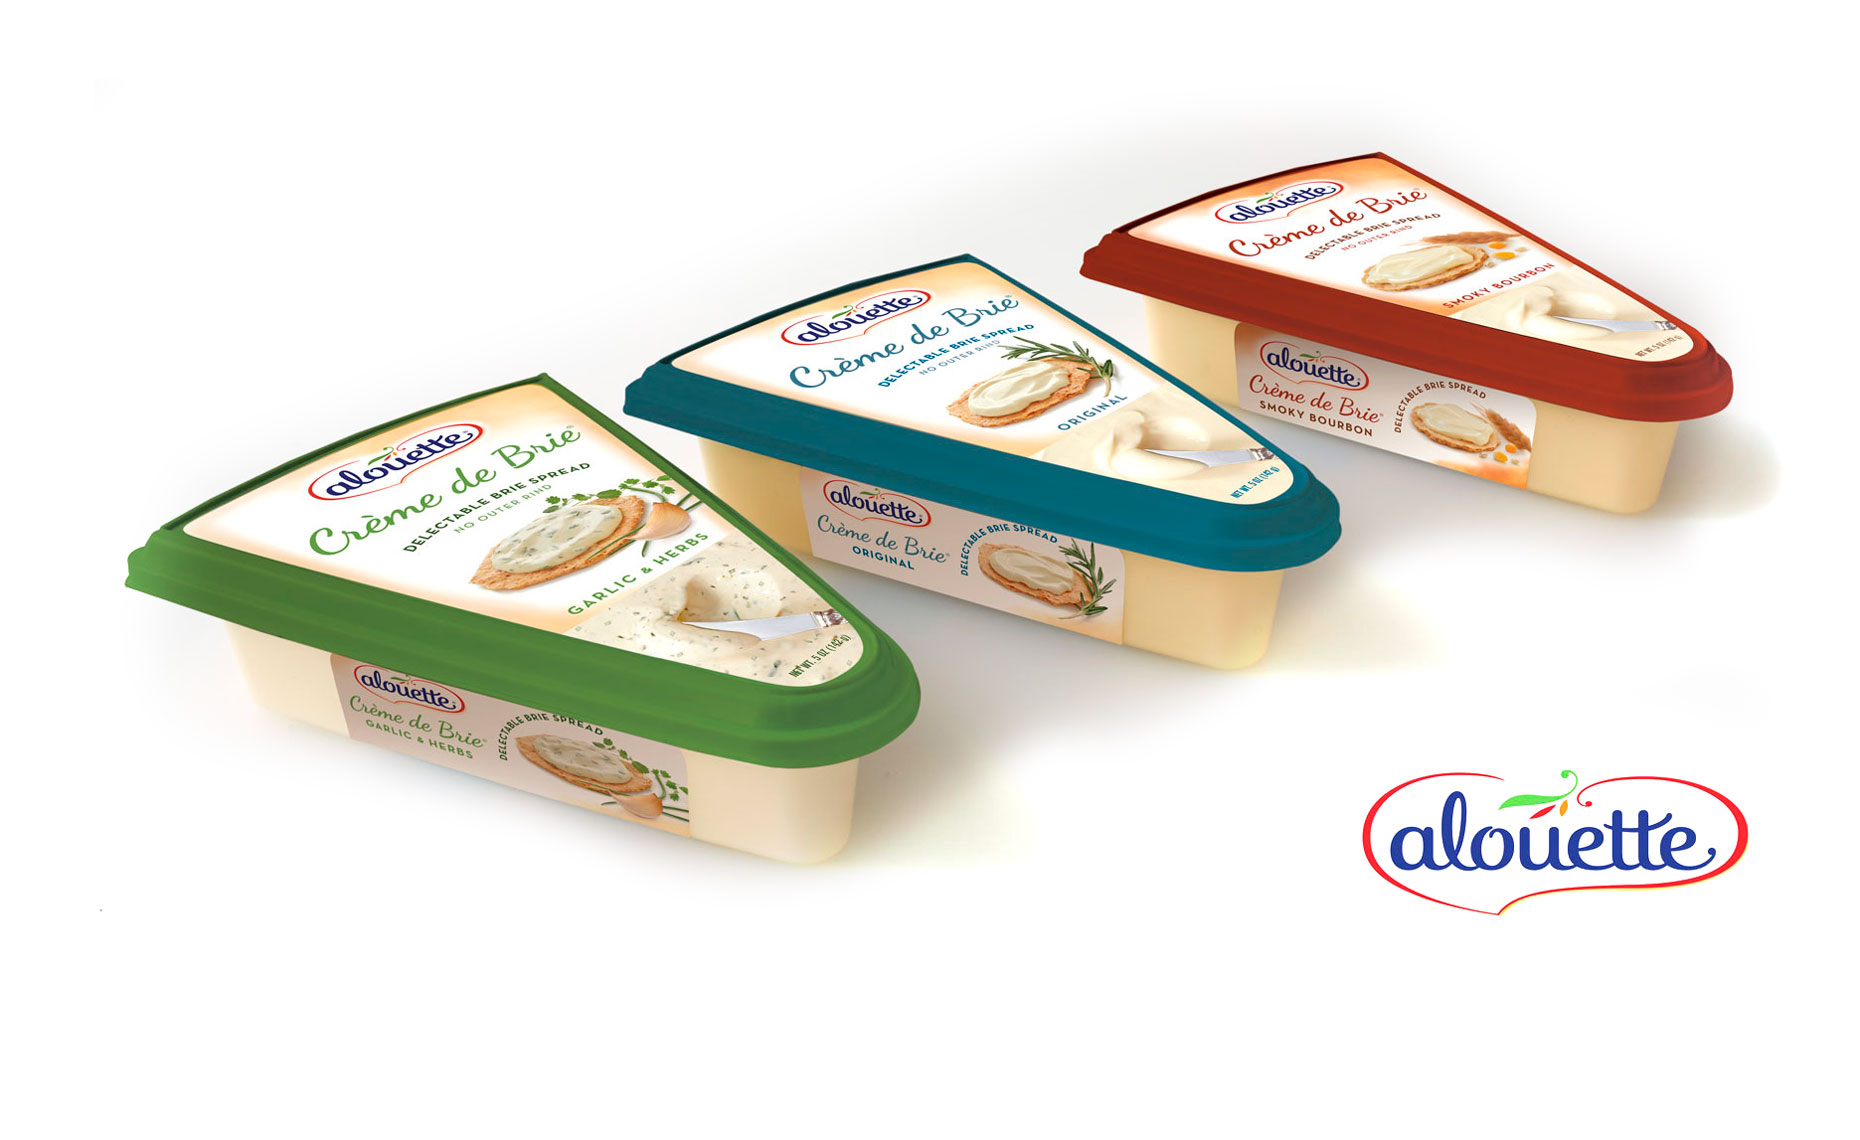 Alouette Creme de brie packaging photography